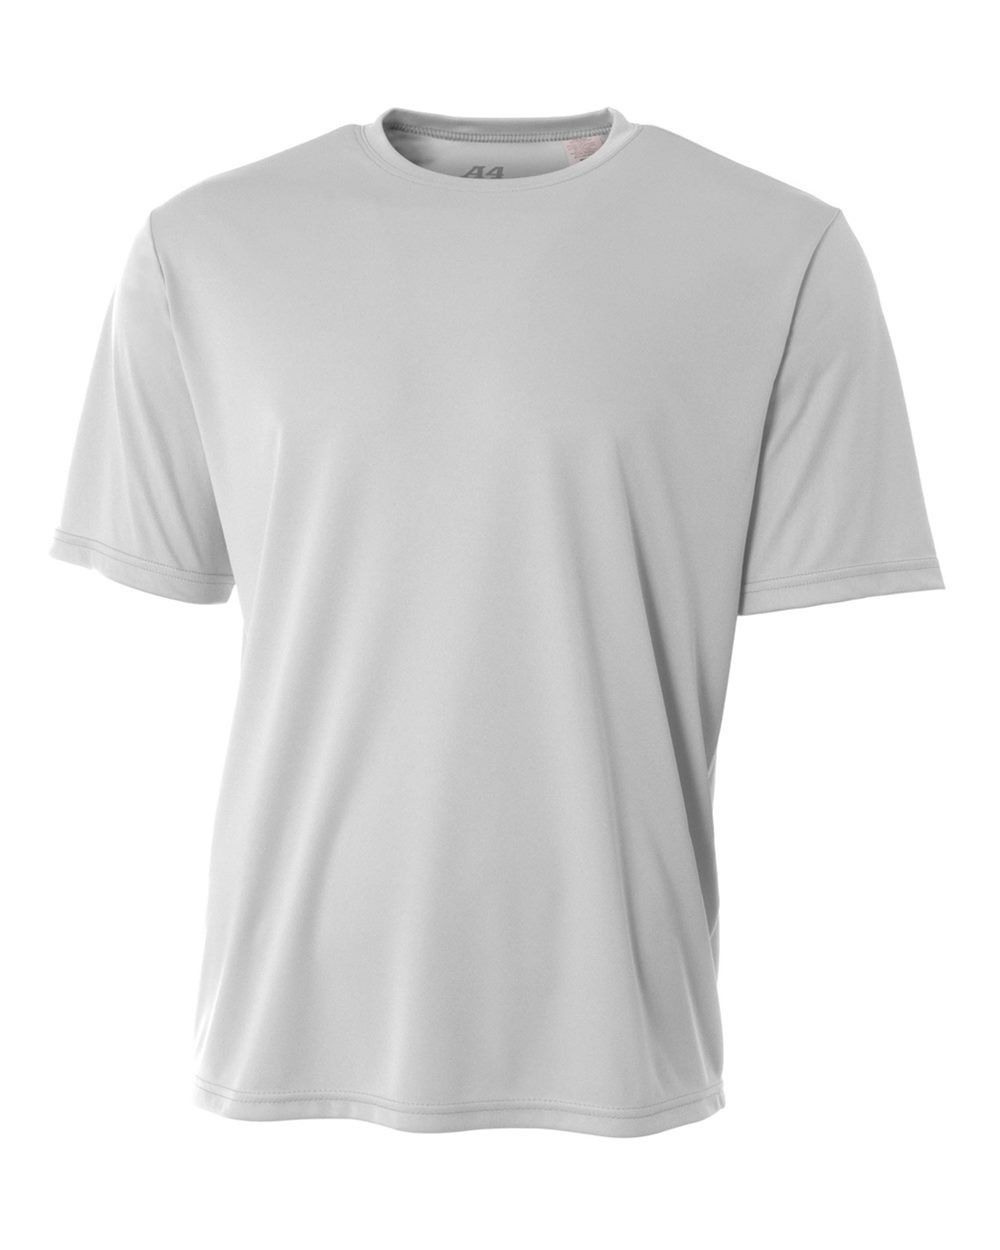 Youth Cooling Performance Crew Shirts T Shirt Cool T Shirts